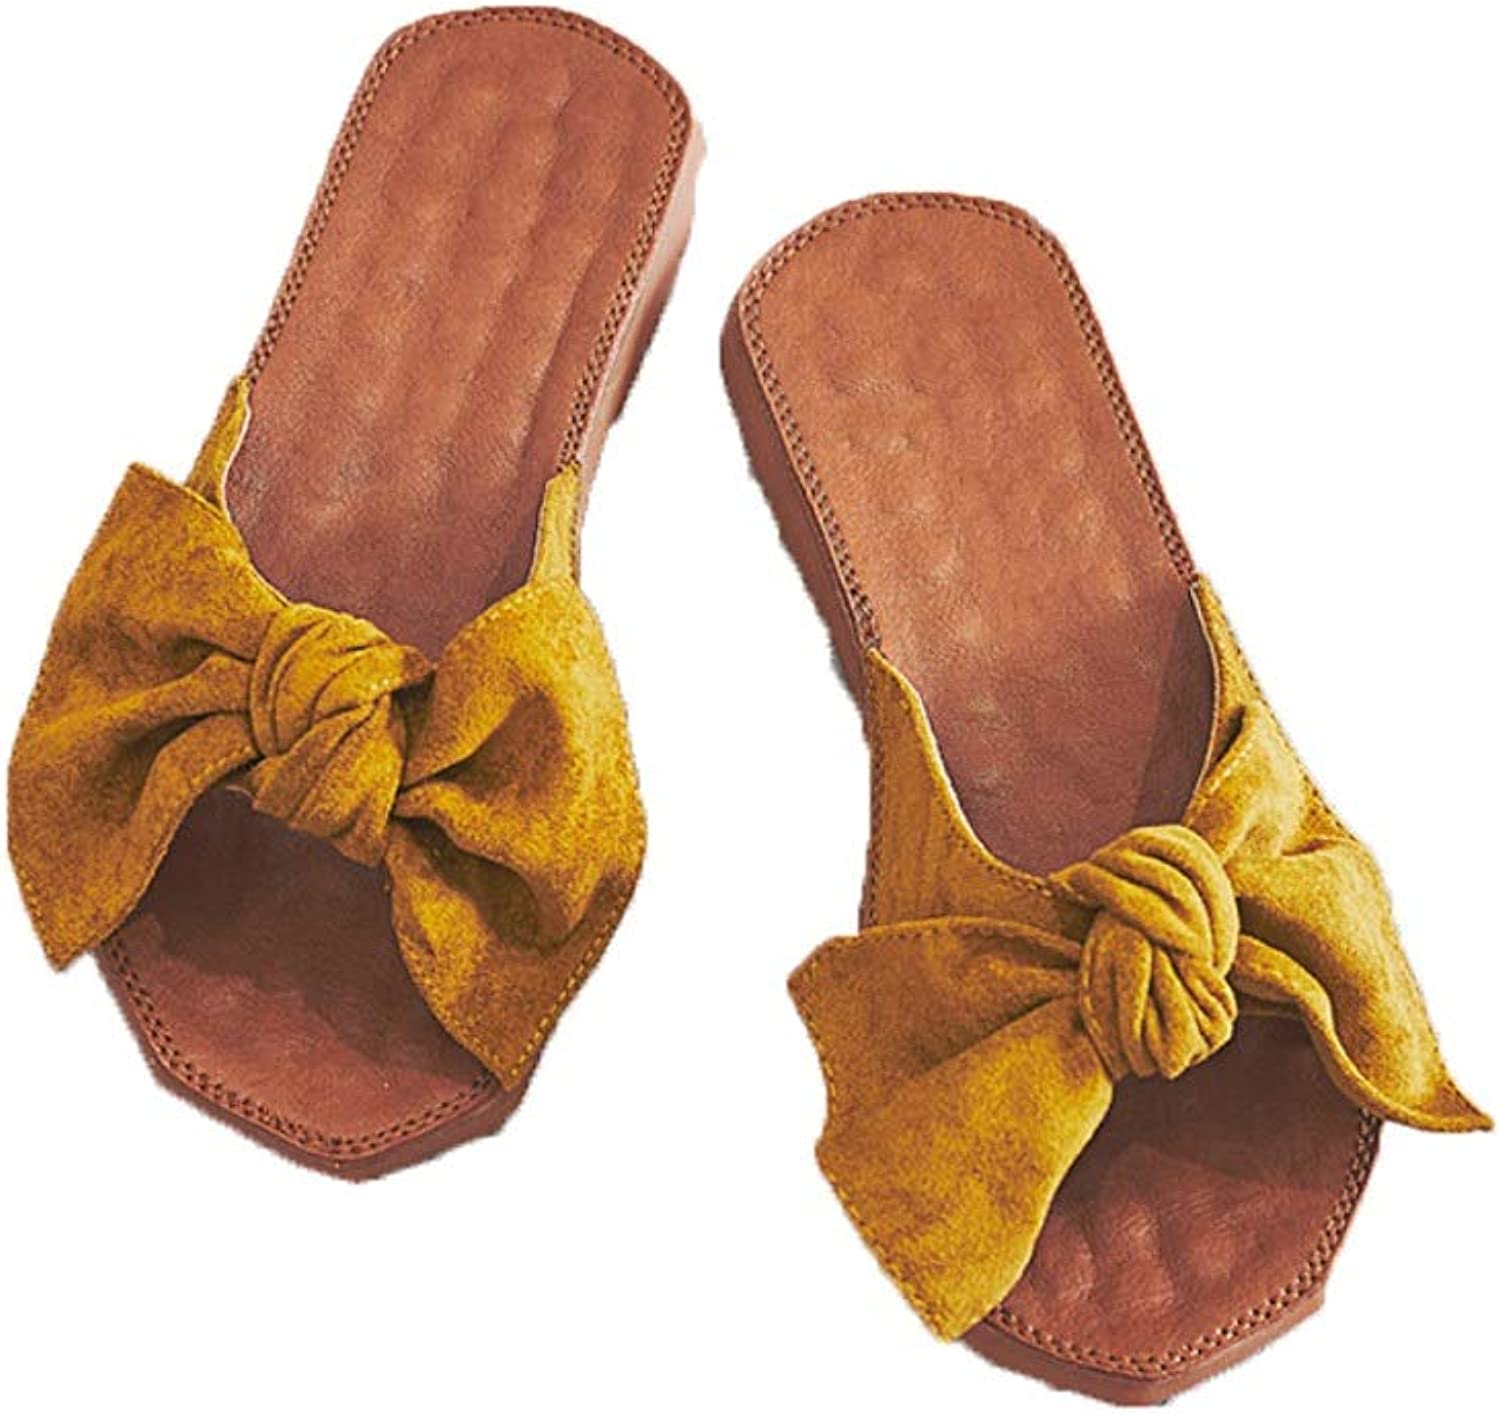 Ailj Women's Sandals, Woman's Slide with Sandals Canvas Knot Bow Summer Non-Slip Casual Sandals Bow Sandals Yellow